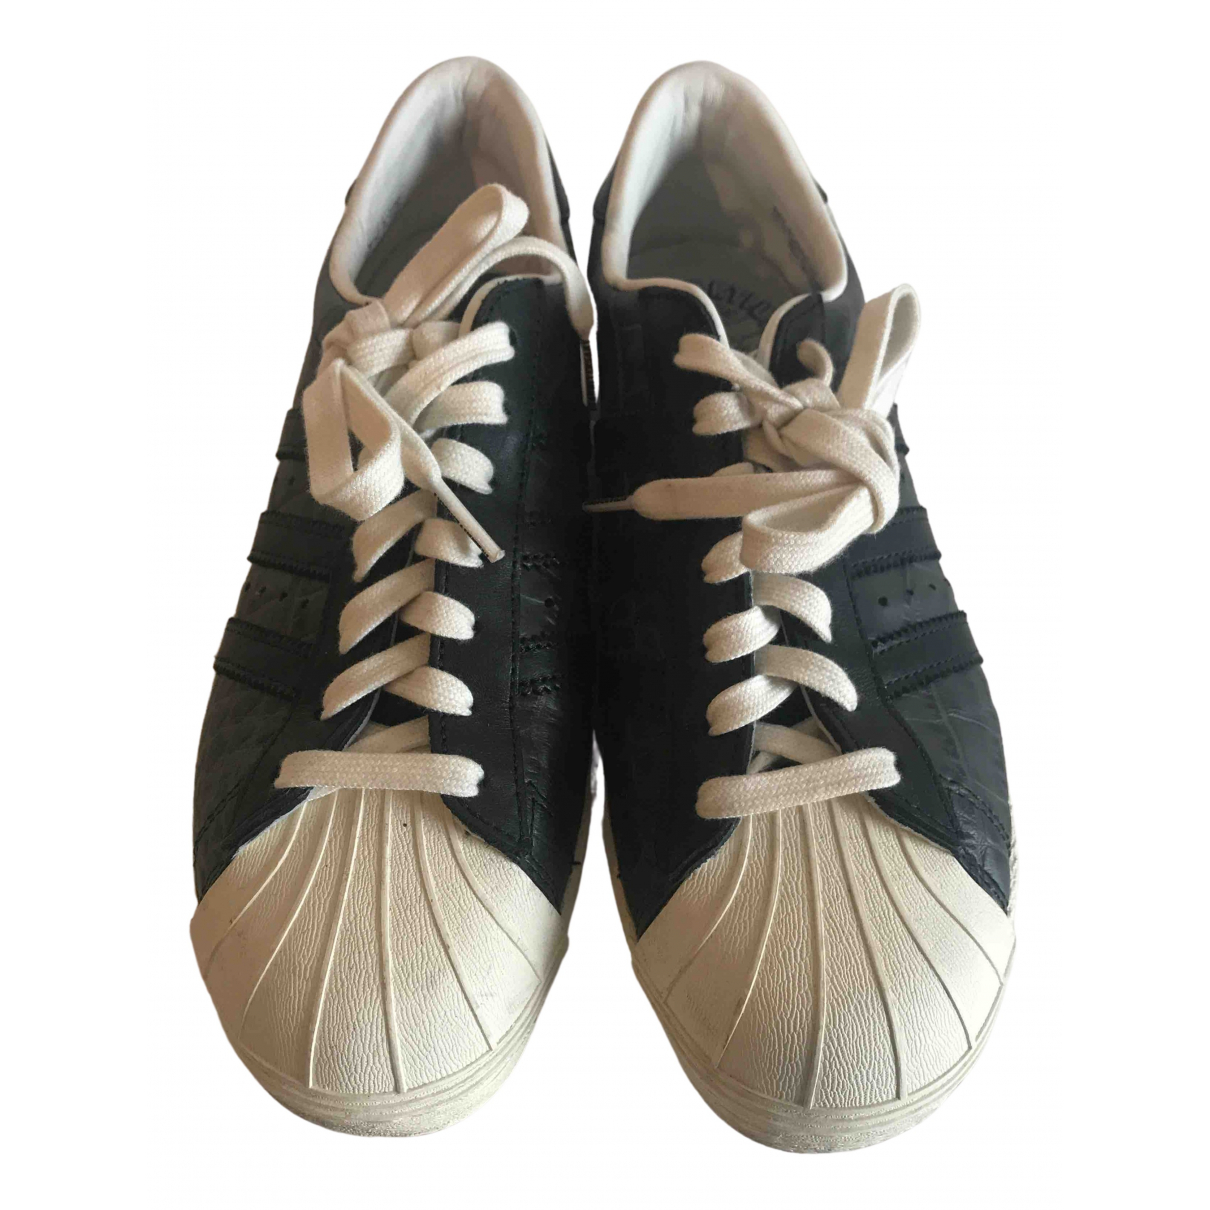 Adidas Superstar Grey Leather Trainers for Women 37 EU